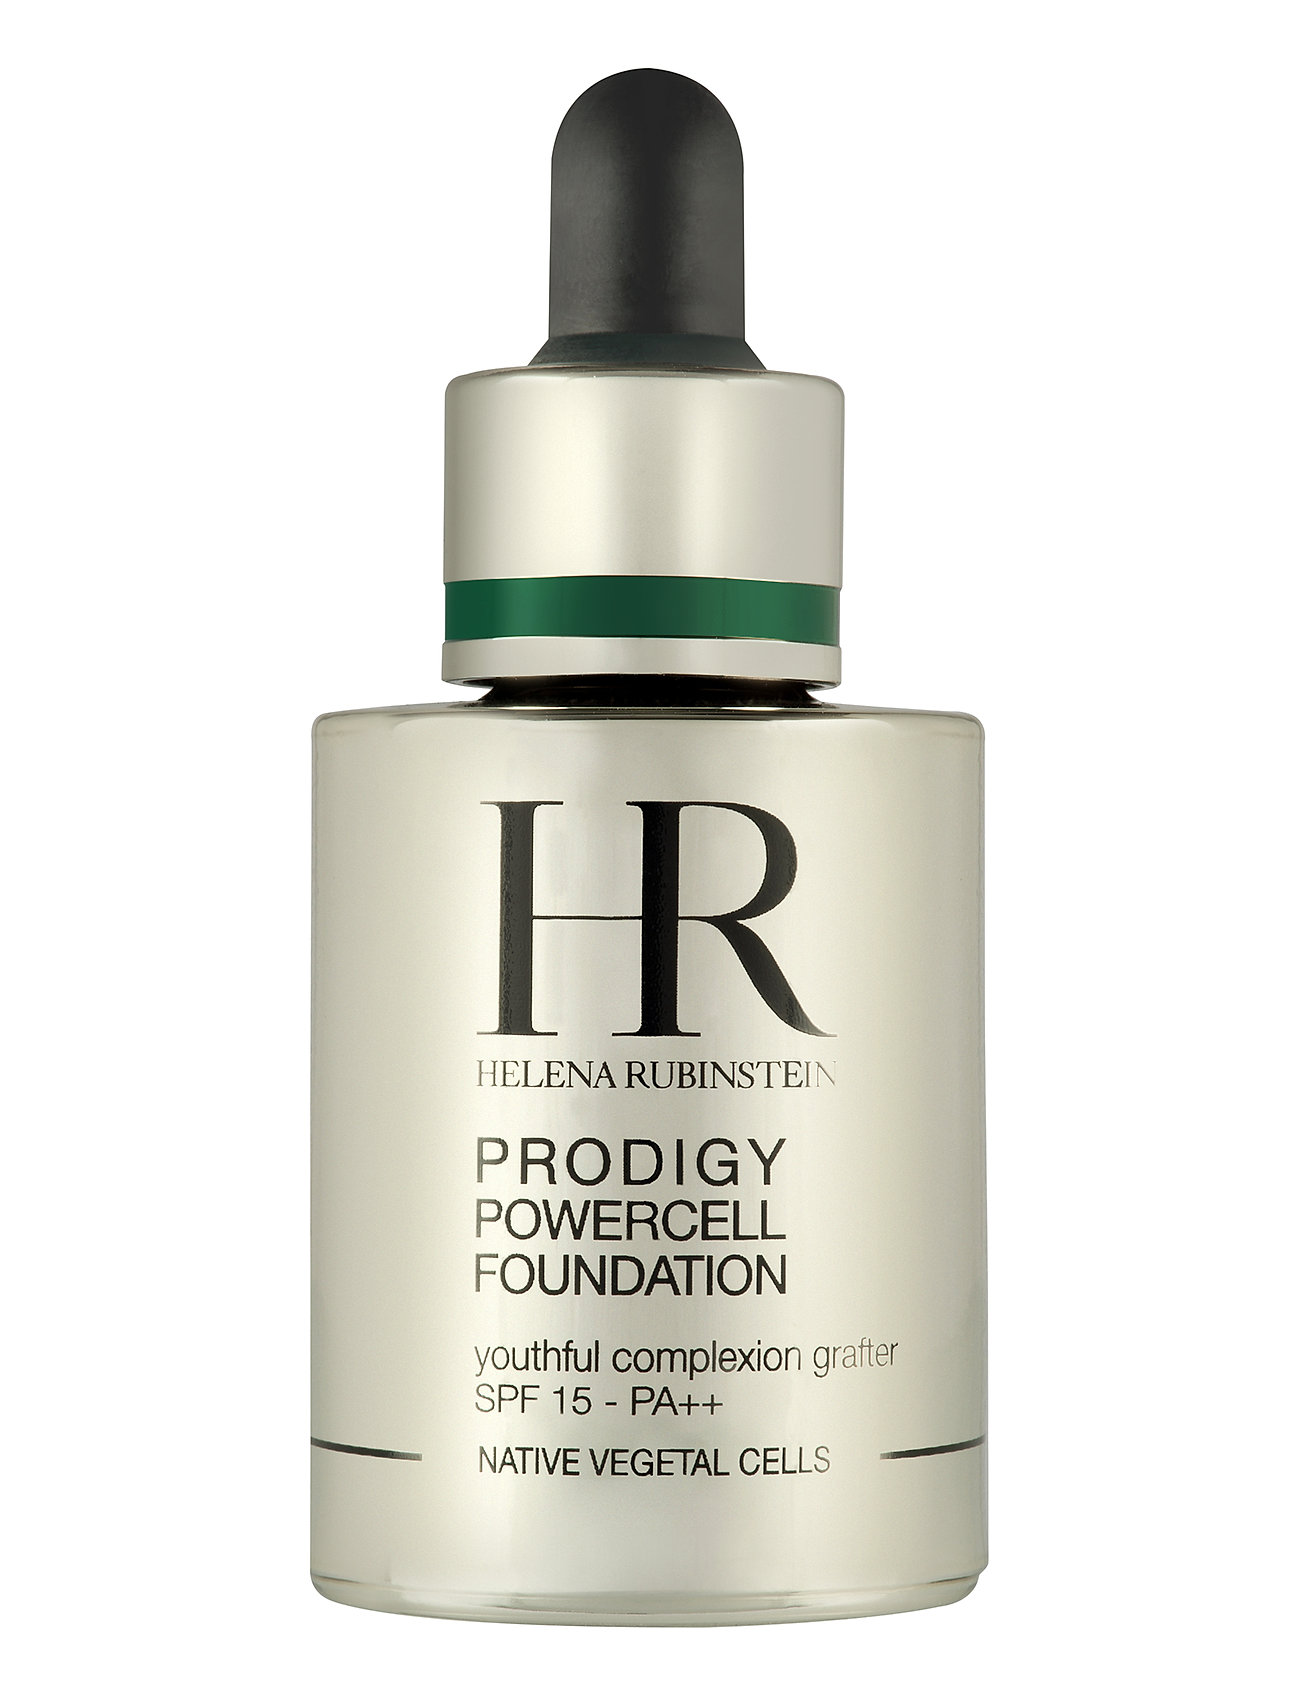 helena rubinstein Prodigy powercell foundation på boozt.com dk